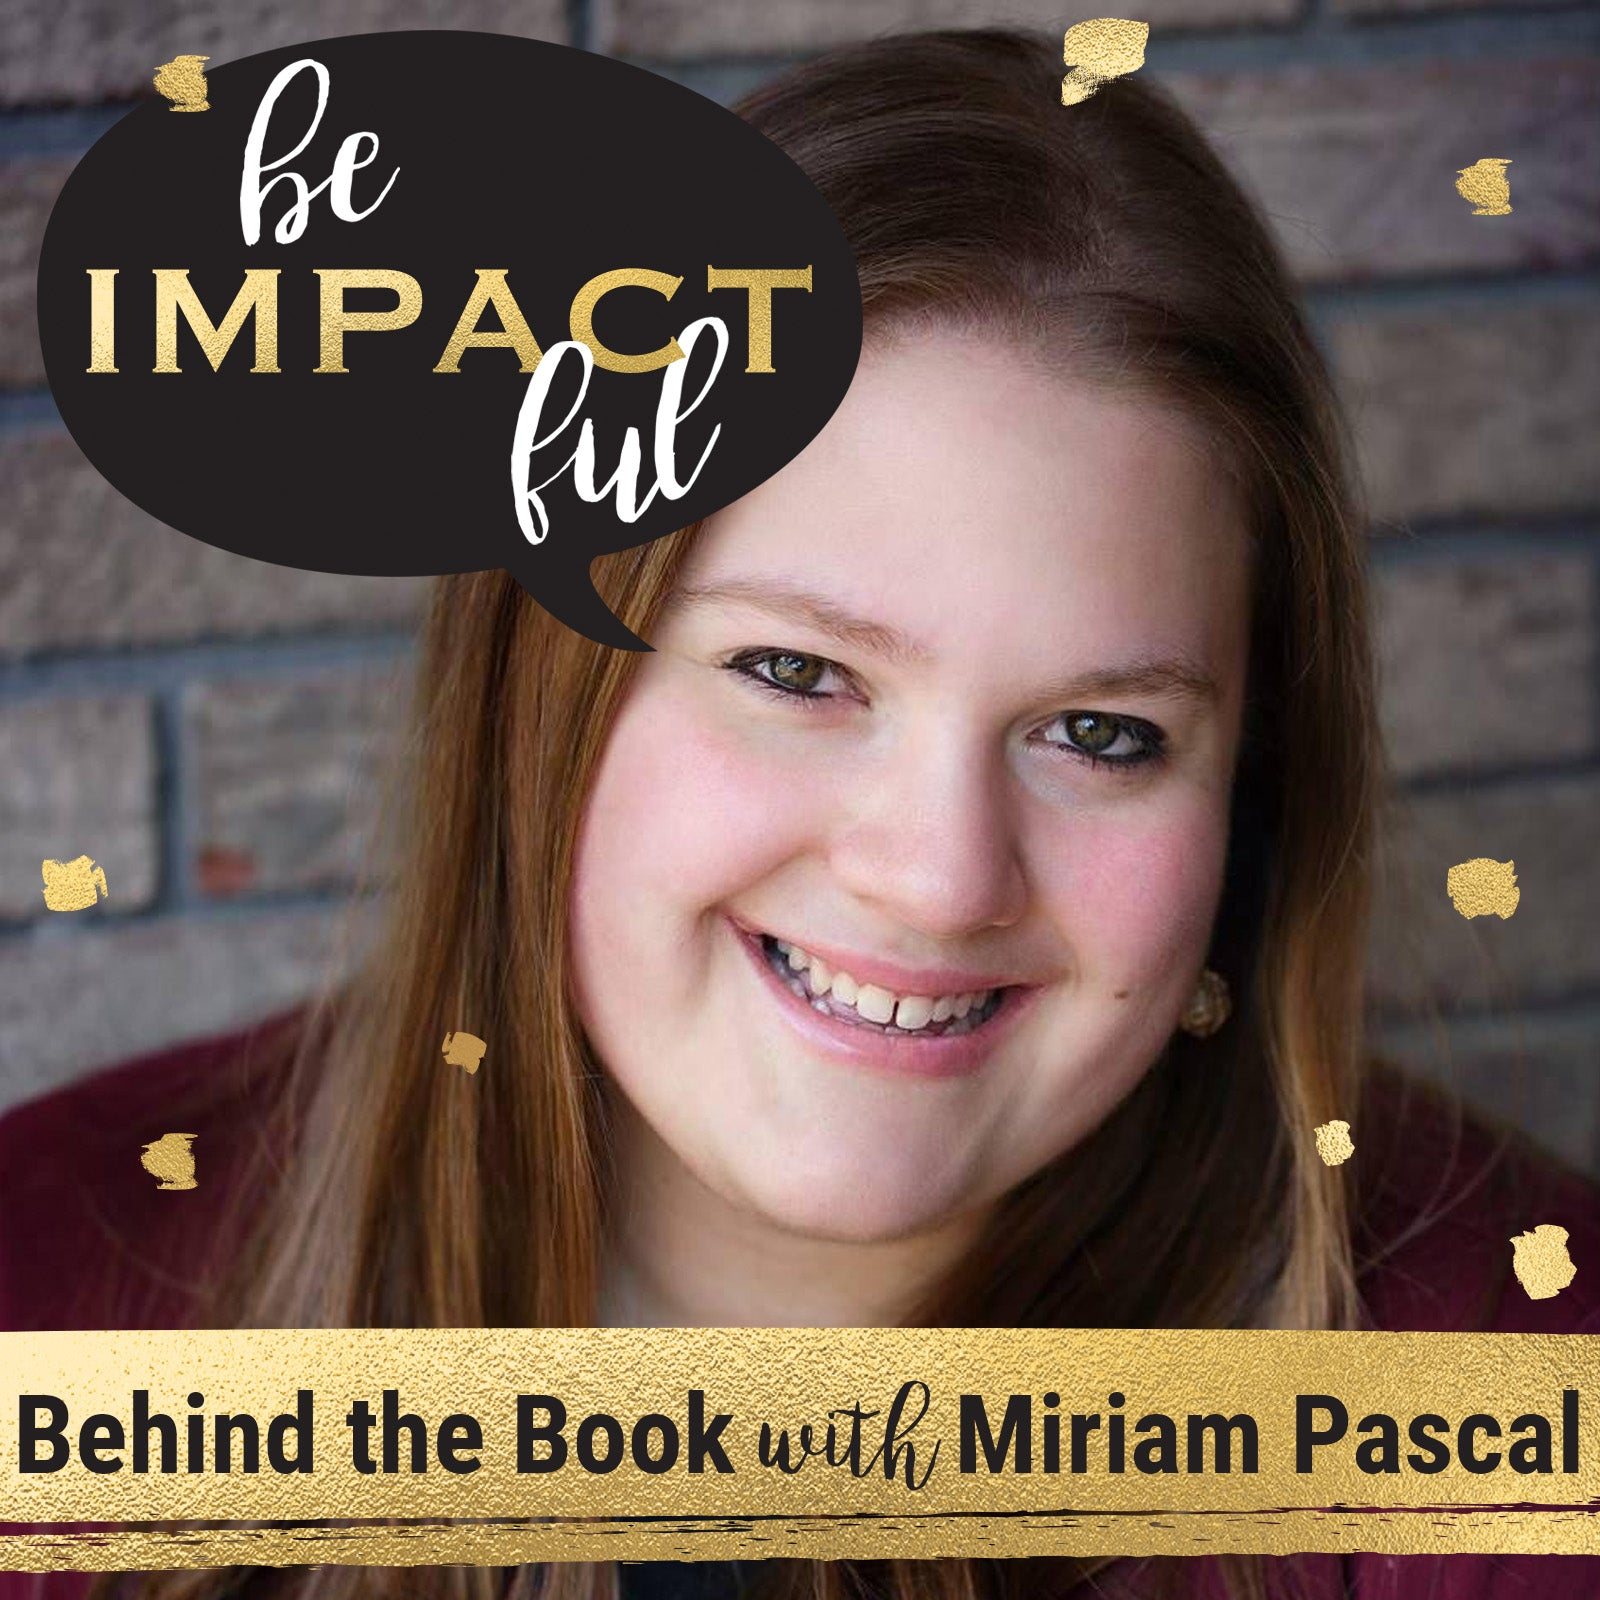 Behind the Book with Miriam Pascal